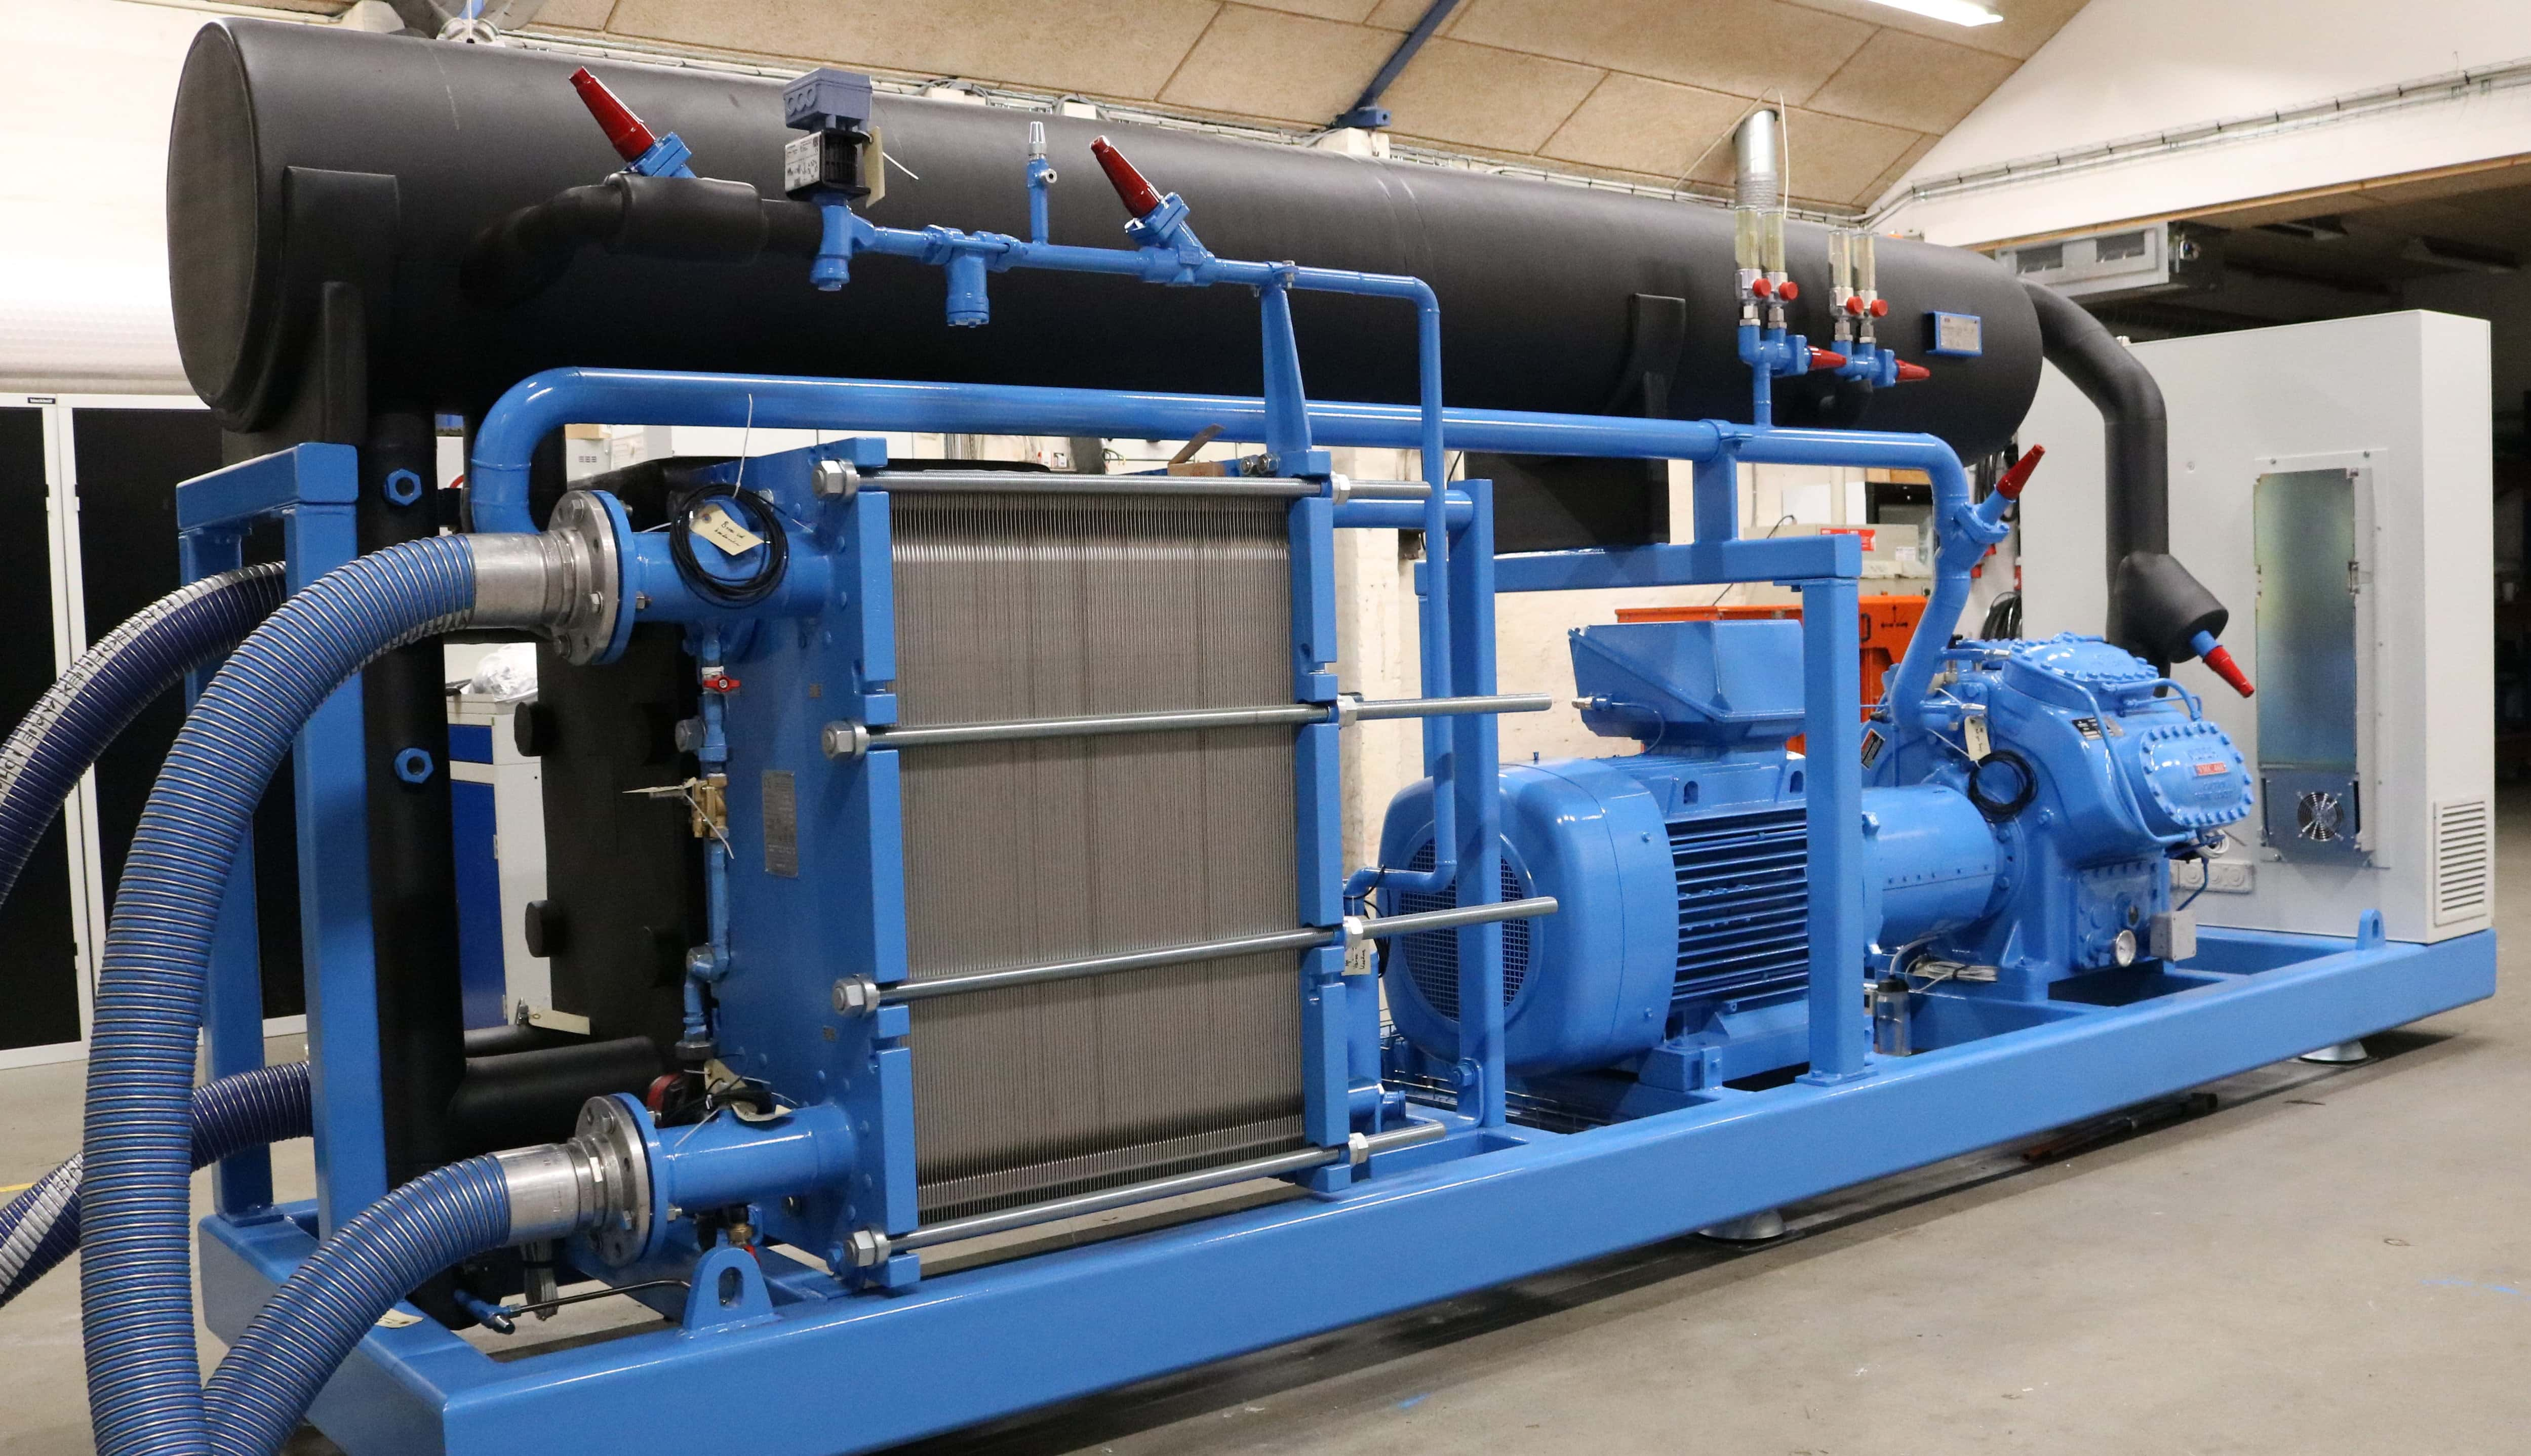 Water cooled ammonia chiller will black evaporator lagging for service, maintenance and repair